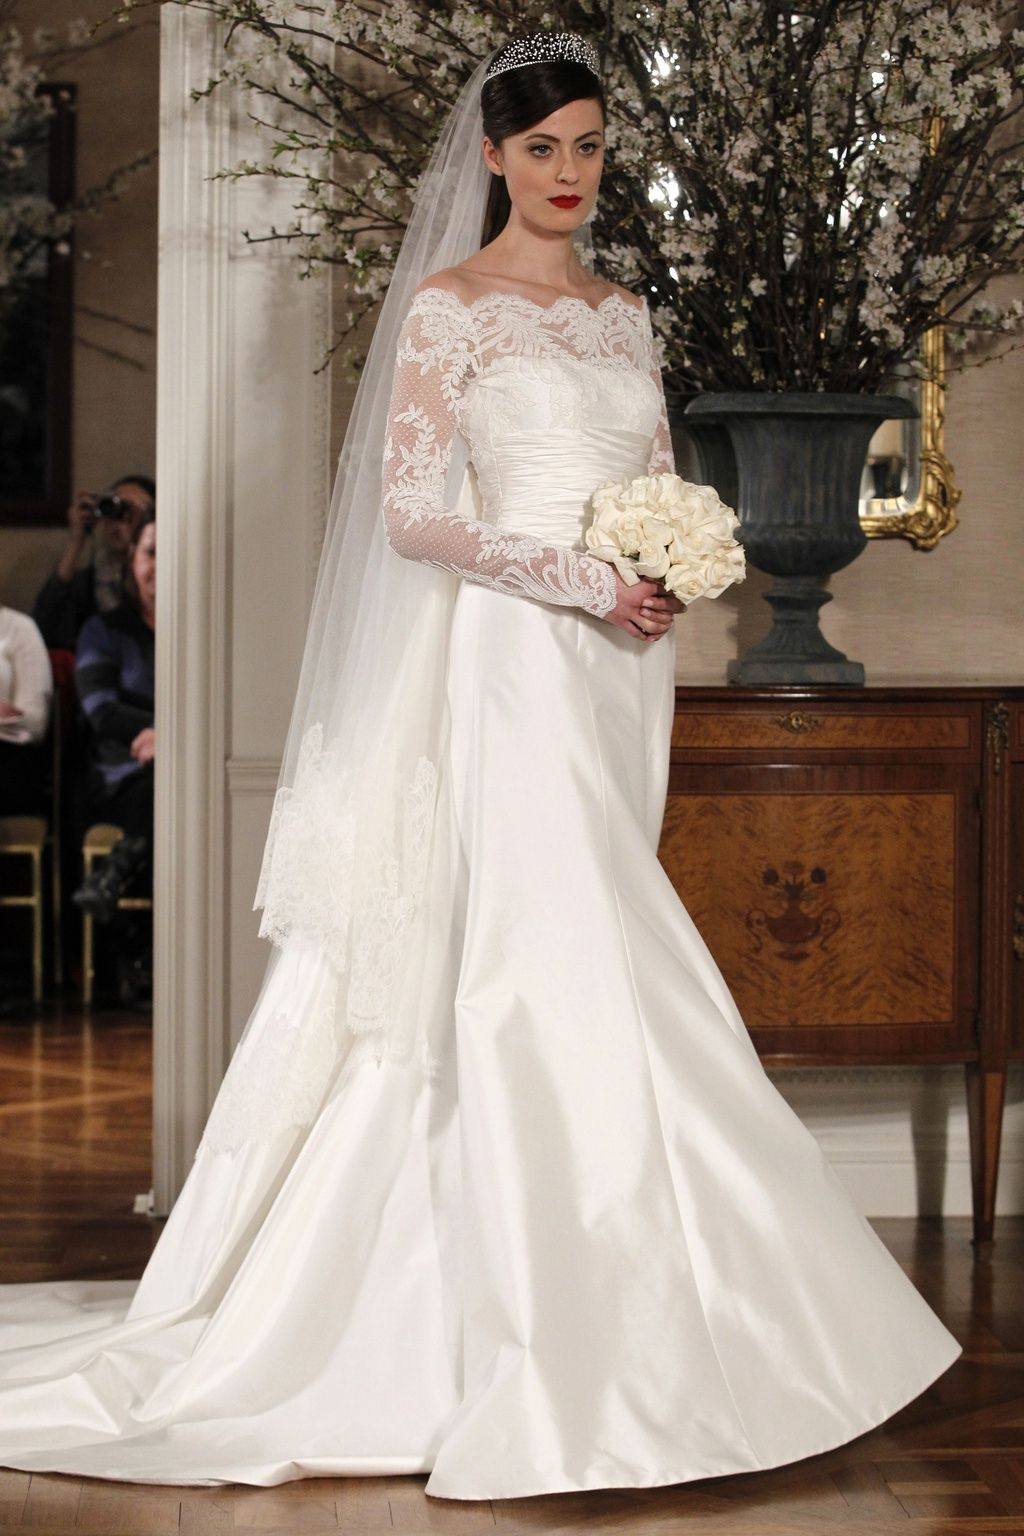 Add on sleeves for wedding dresses  Pin by joanahairwedding on wedding ideas for you  Pinterest  Add